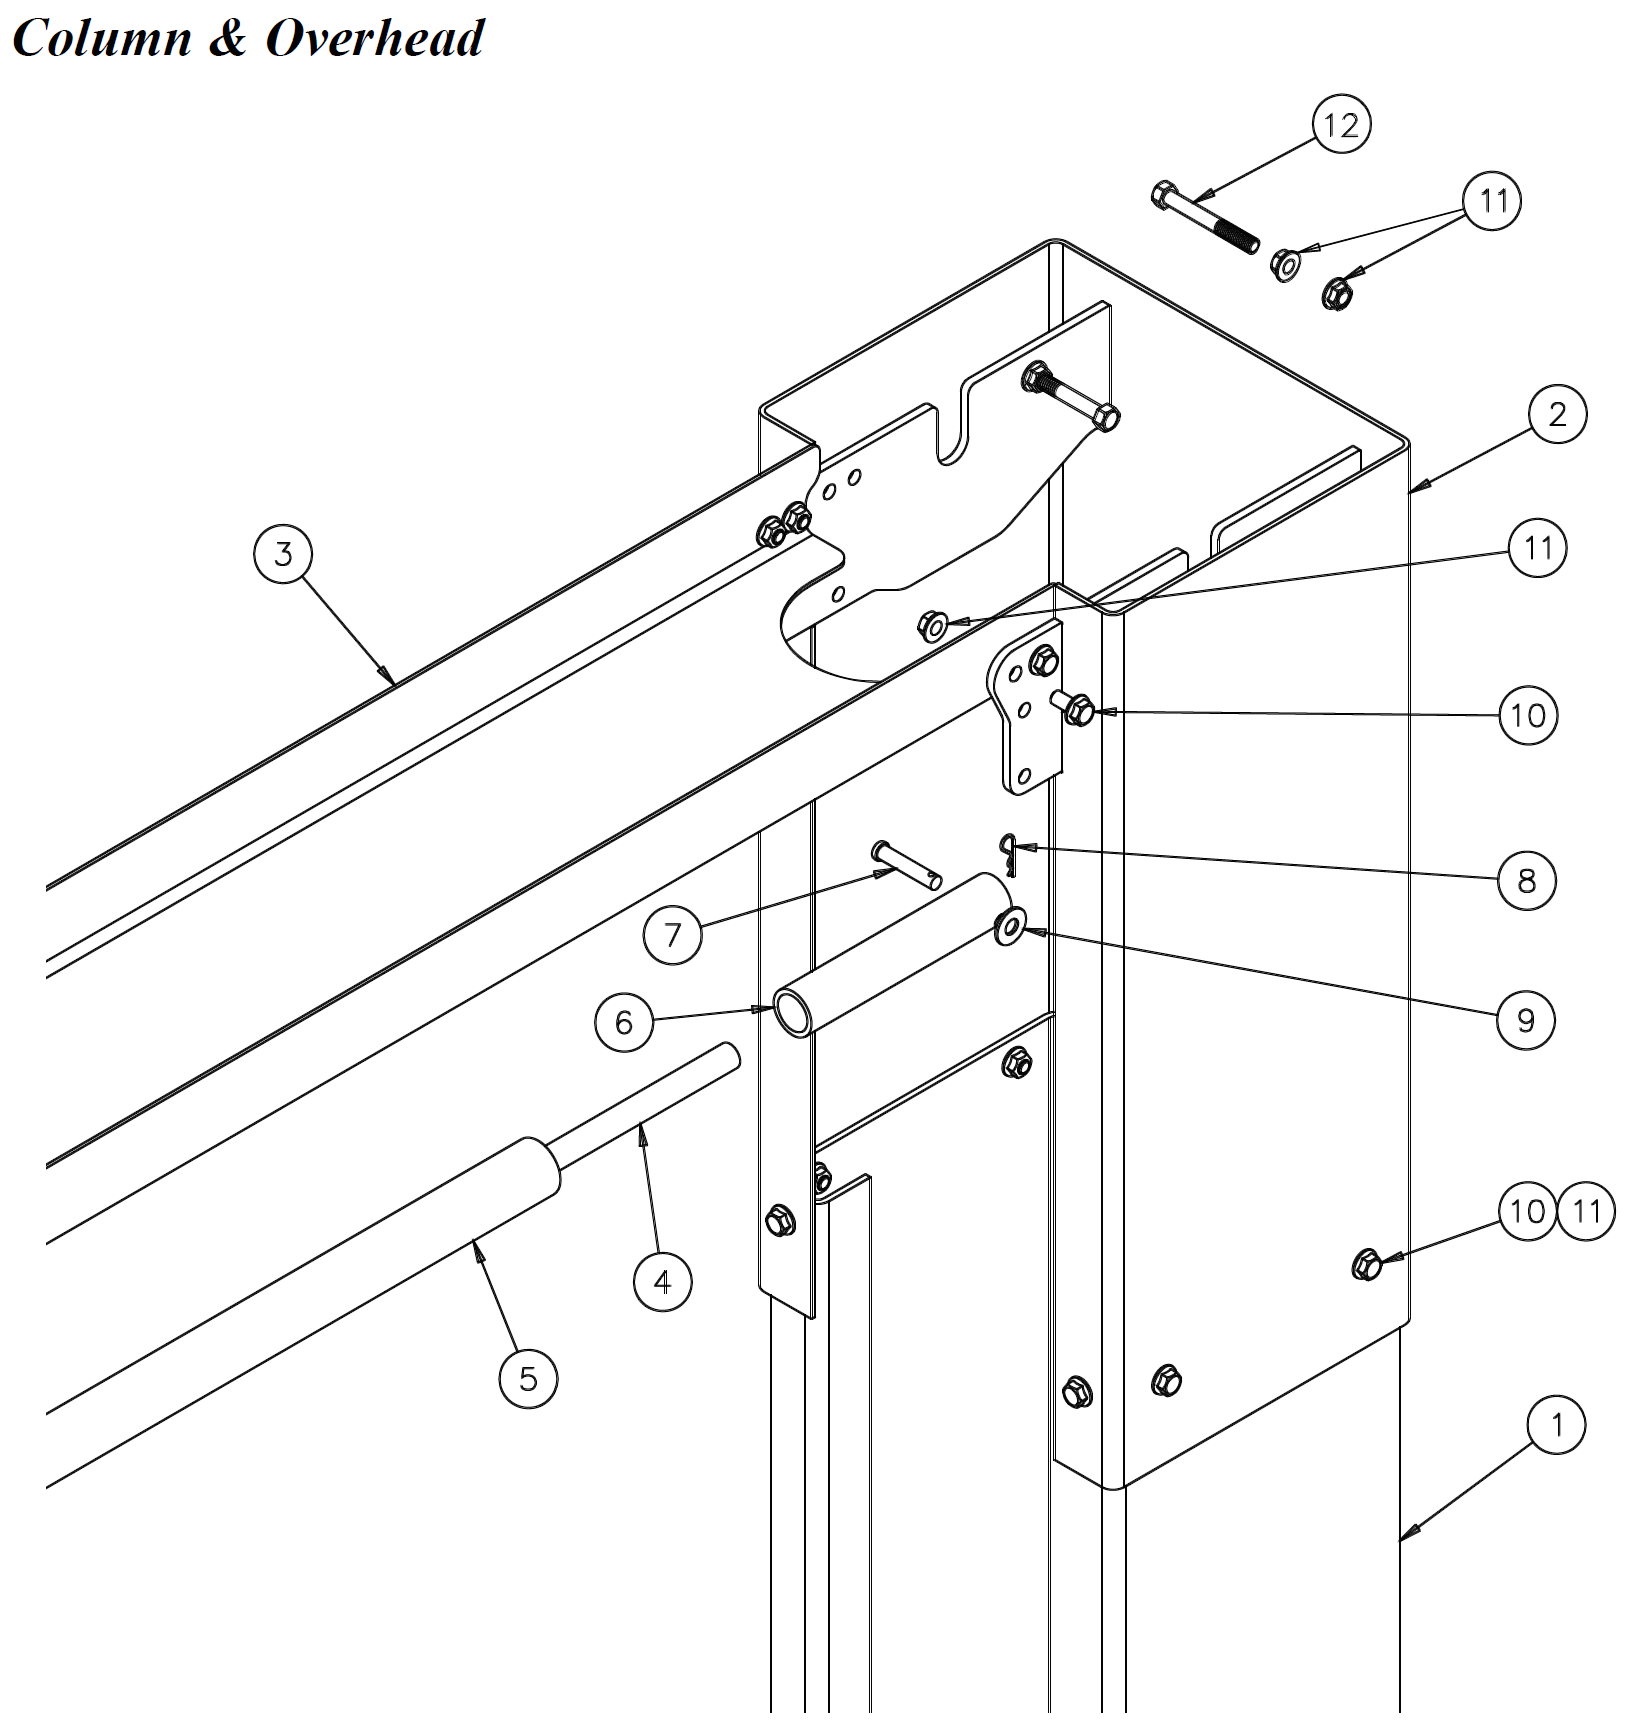 cl10-column-and-overhead-diagram.png